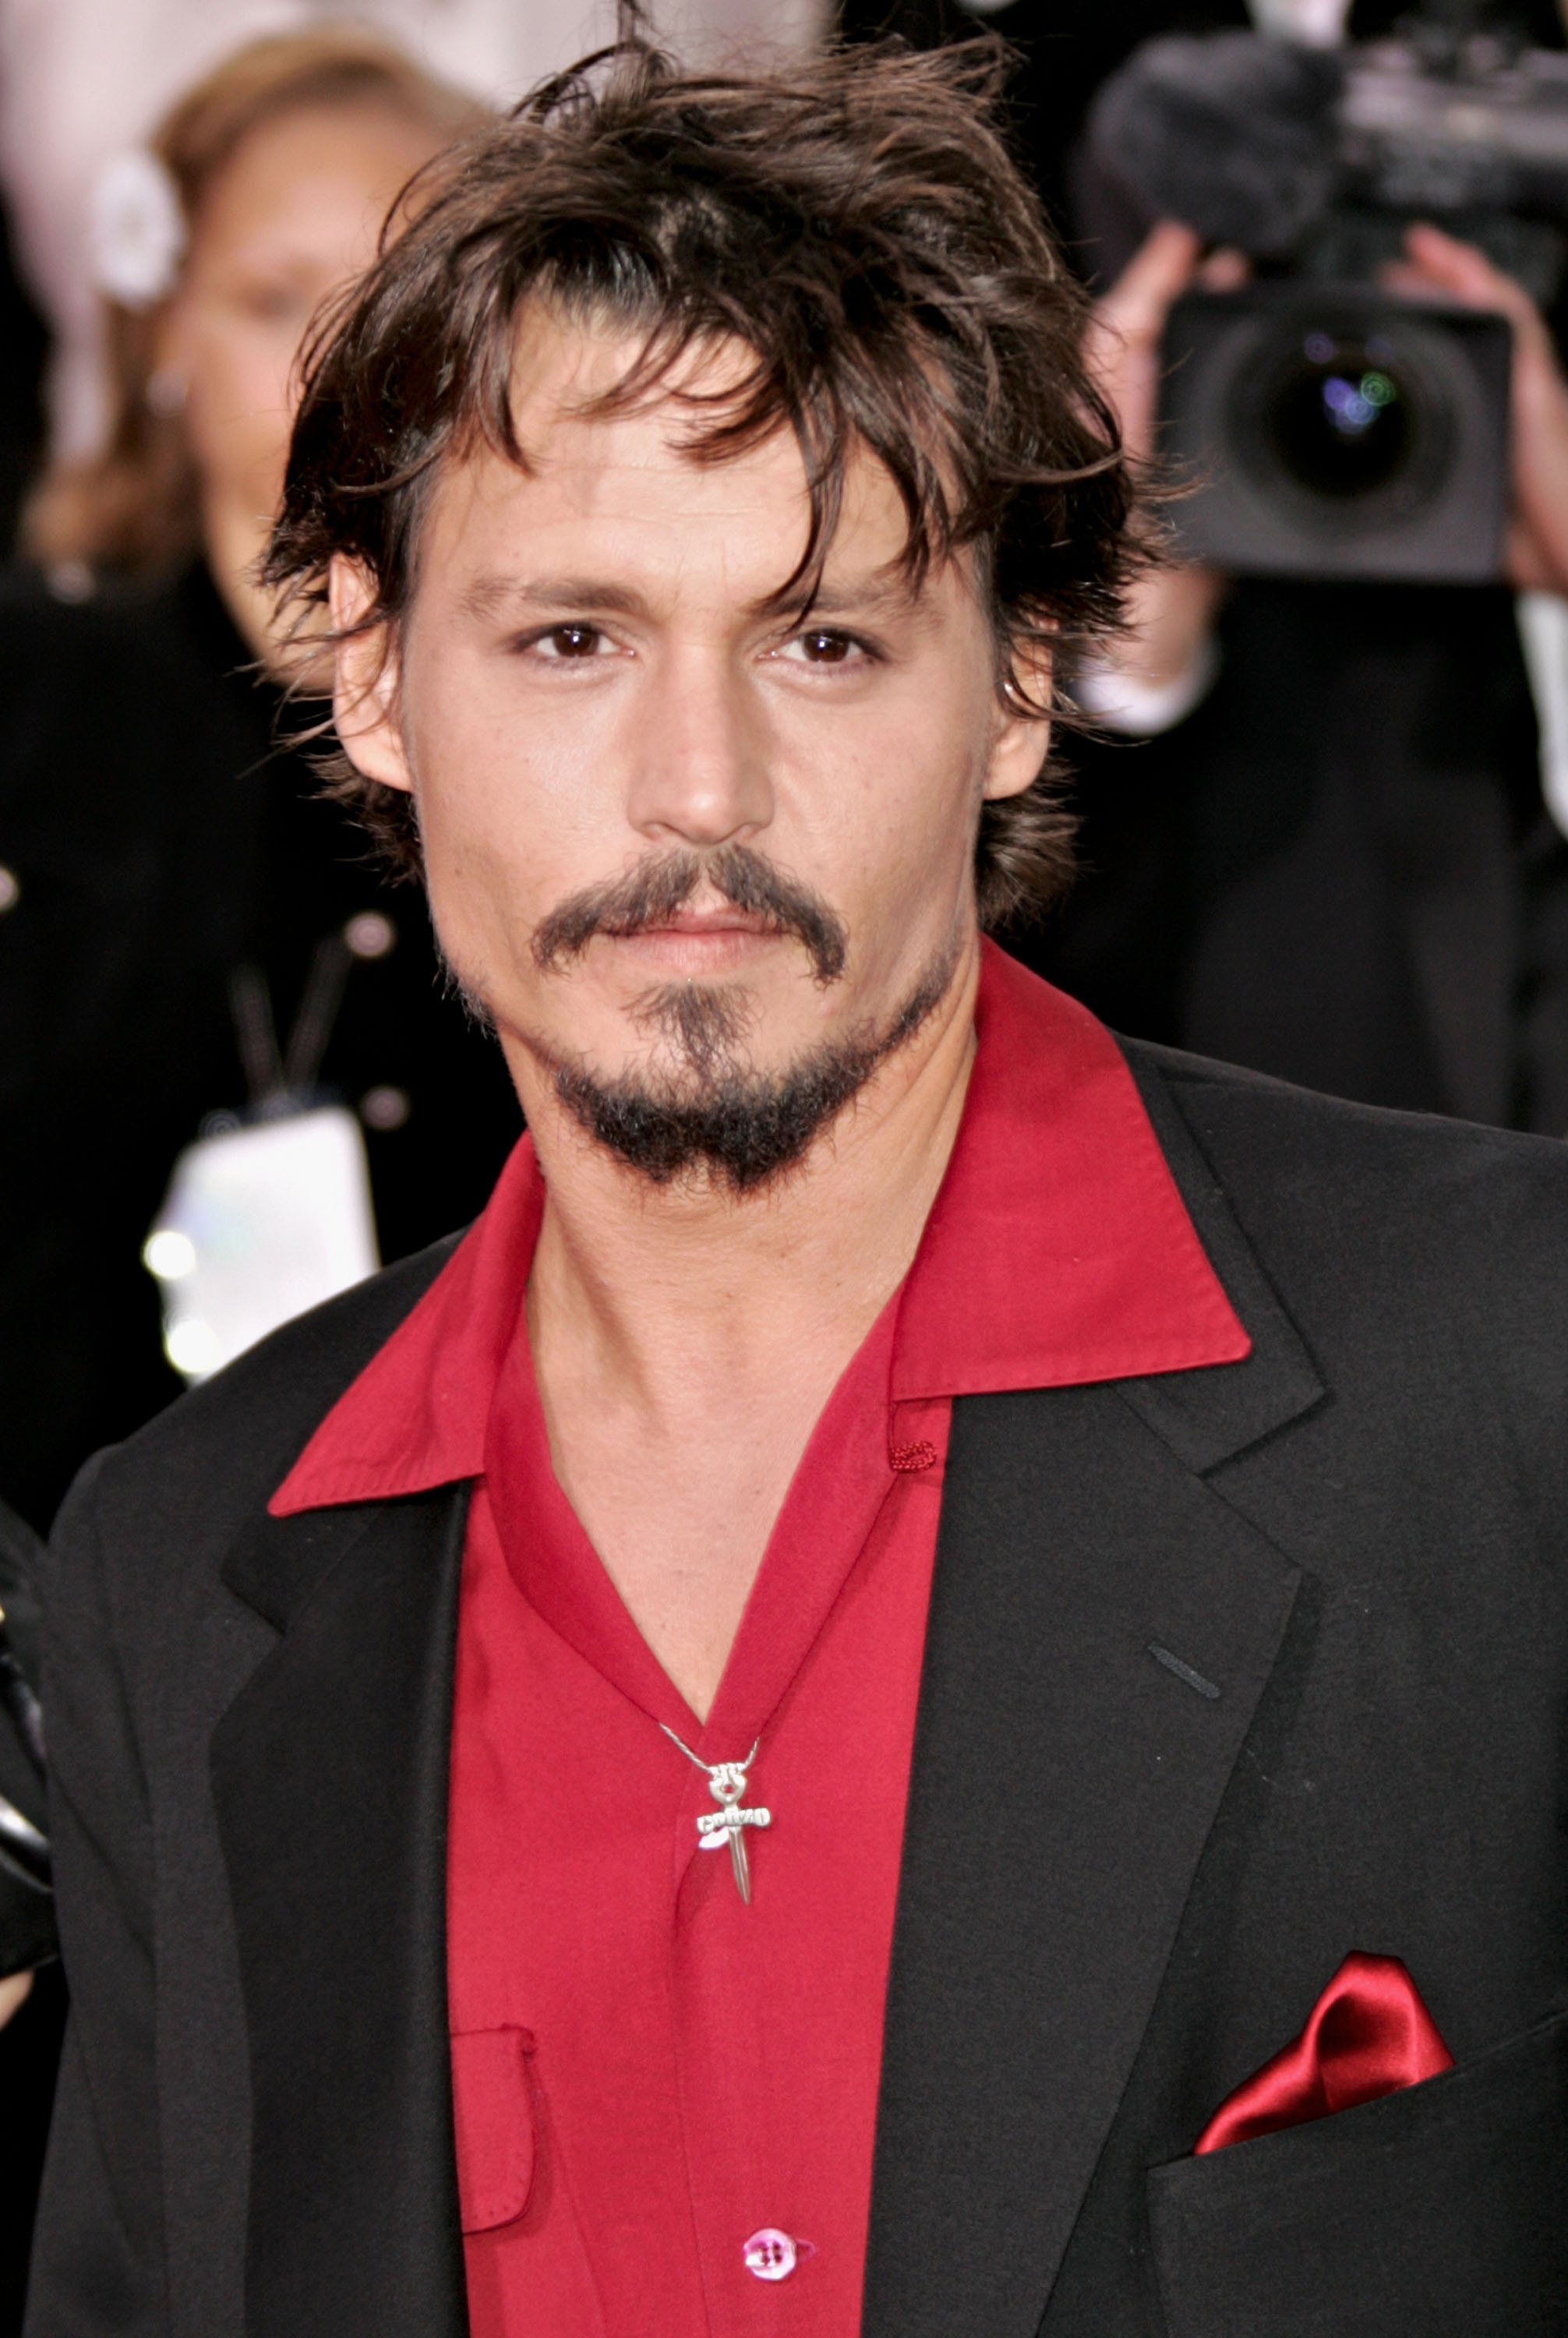 Johnny Depp Must Face Exs Libel Suit After His Attorney